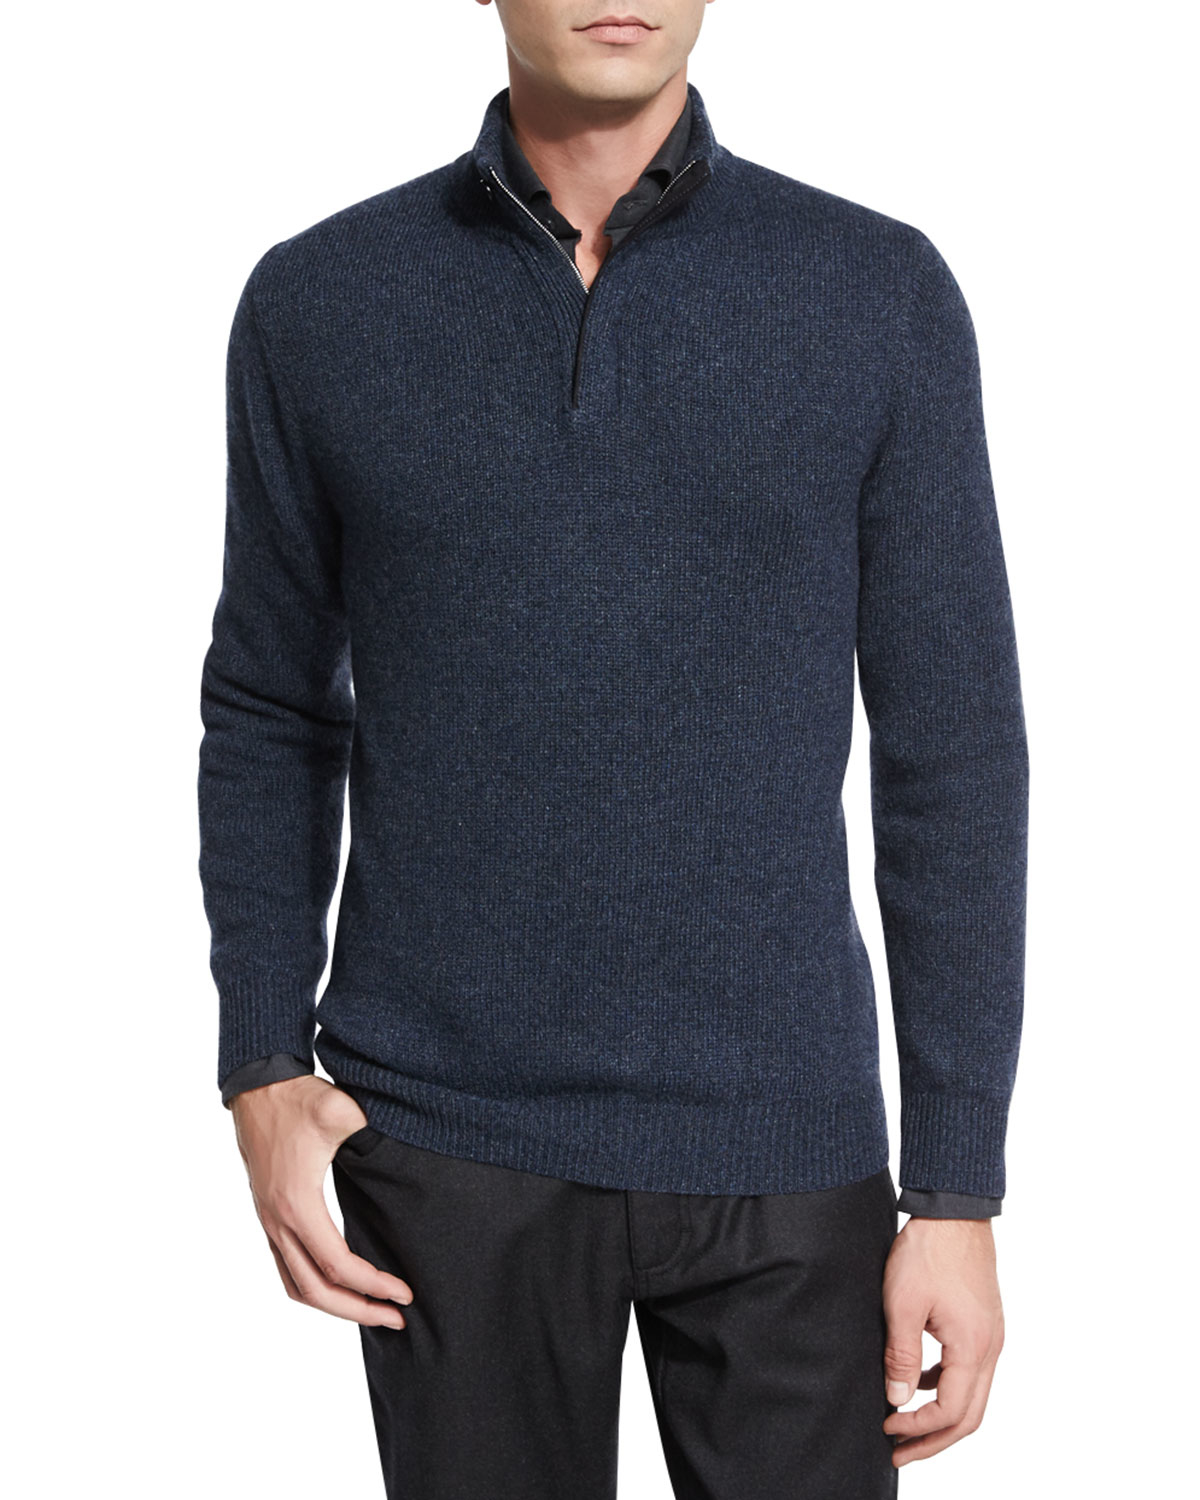 Zegna Sweater 77